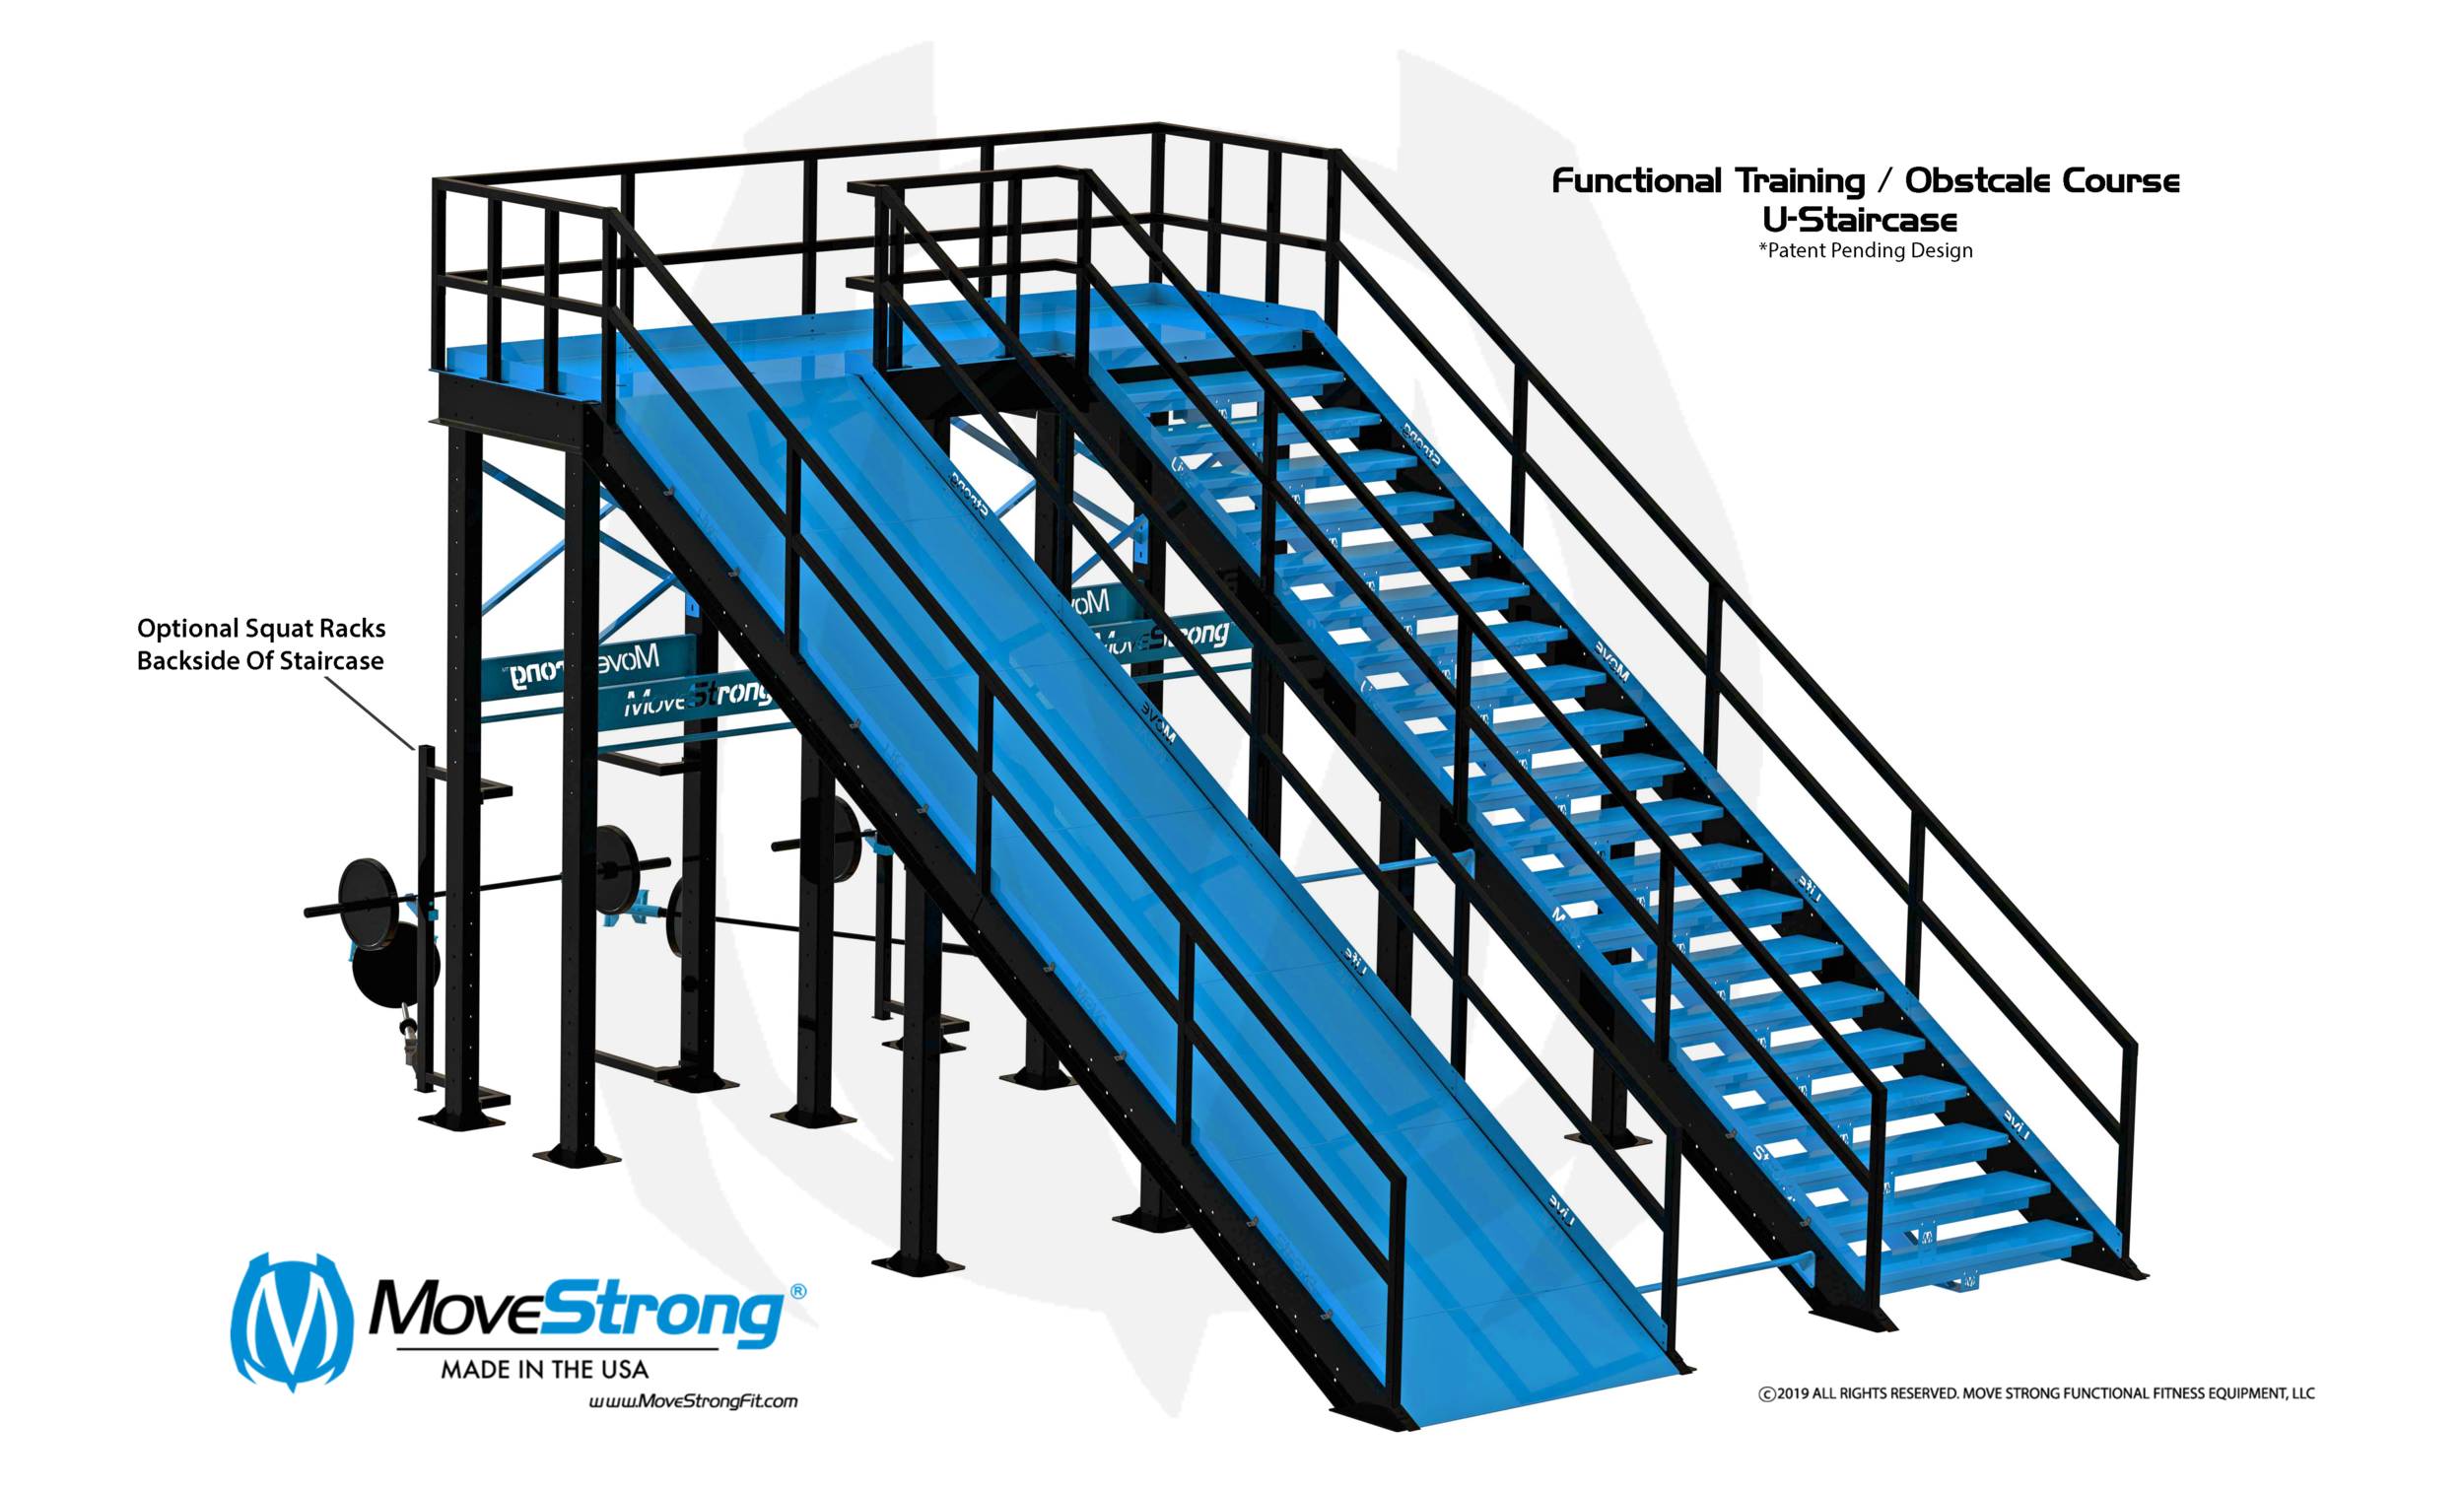 Stair Training Assy - U-Shaped - 20A_LOGO_Web image.png